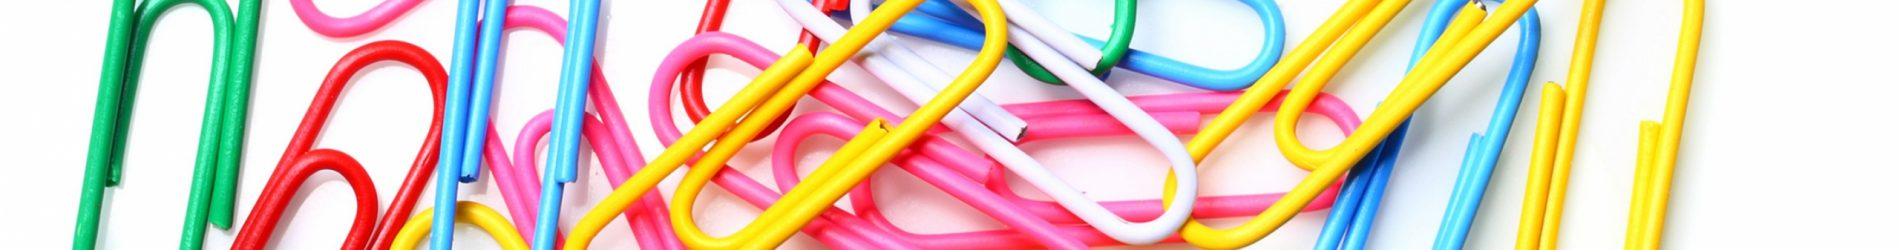 Banner paperclips